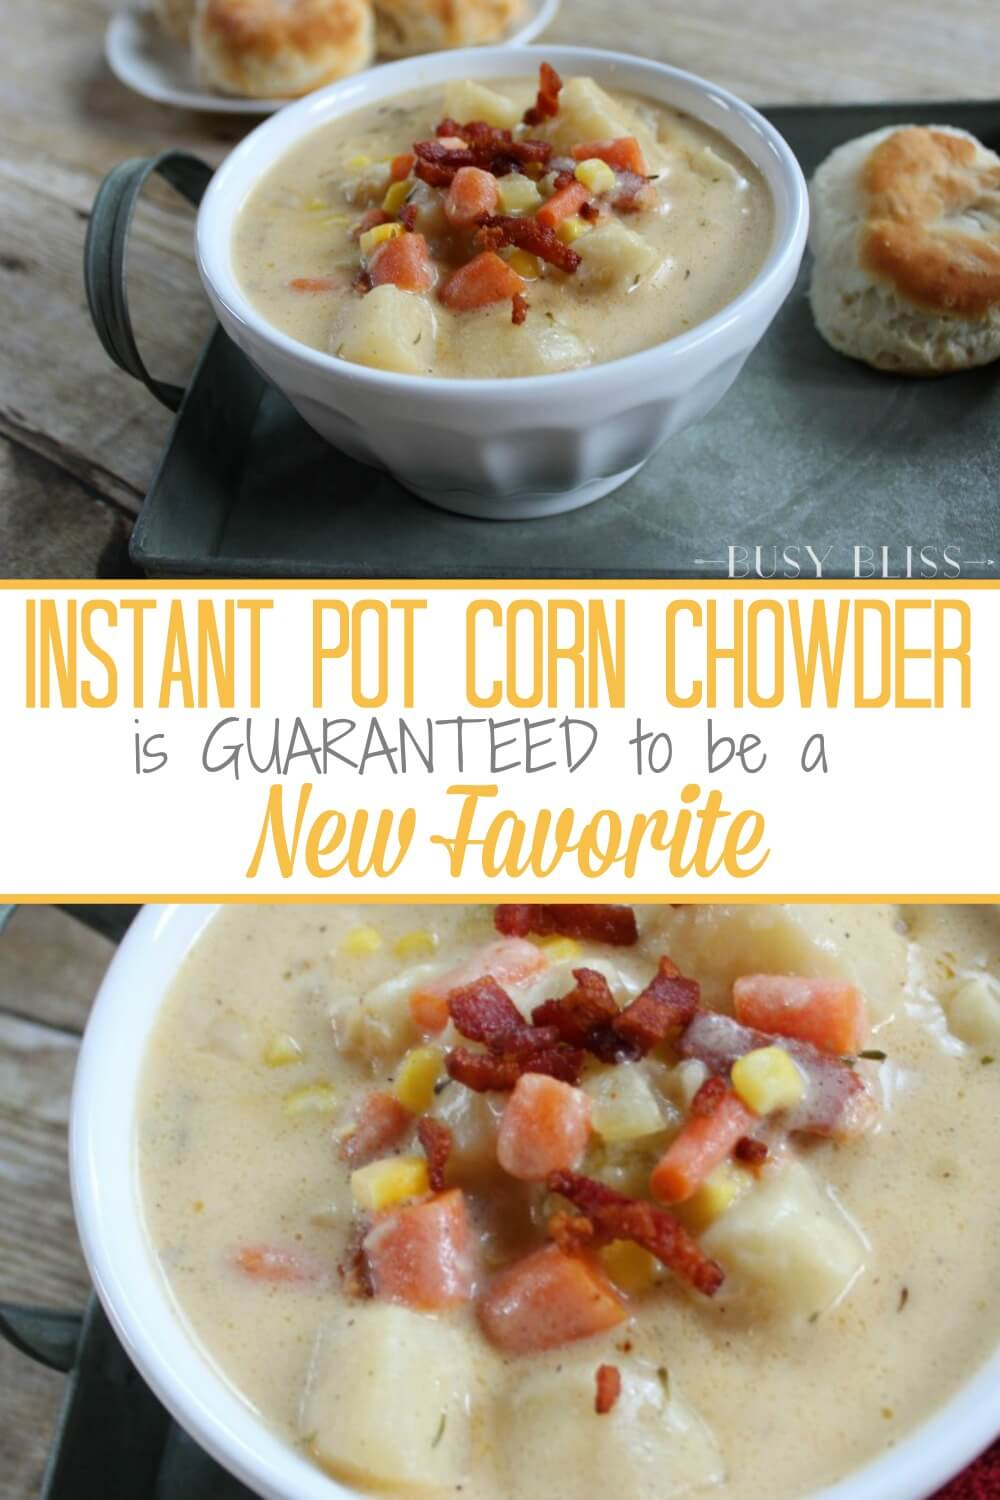 Instant Pot Corn Chowder is an easy, creamy soup recipe with chunks of potato and carrot. The pressure cooker makes it so simple to make this delicious soup your family is sure to love!